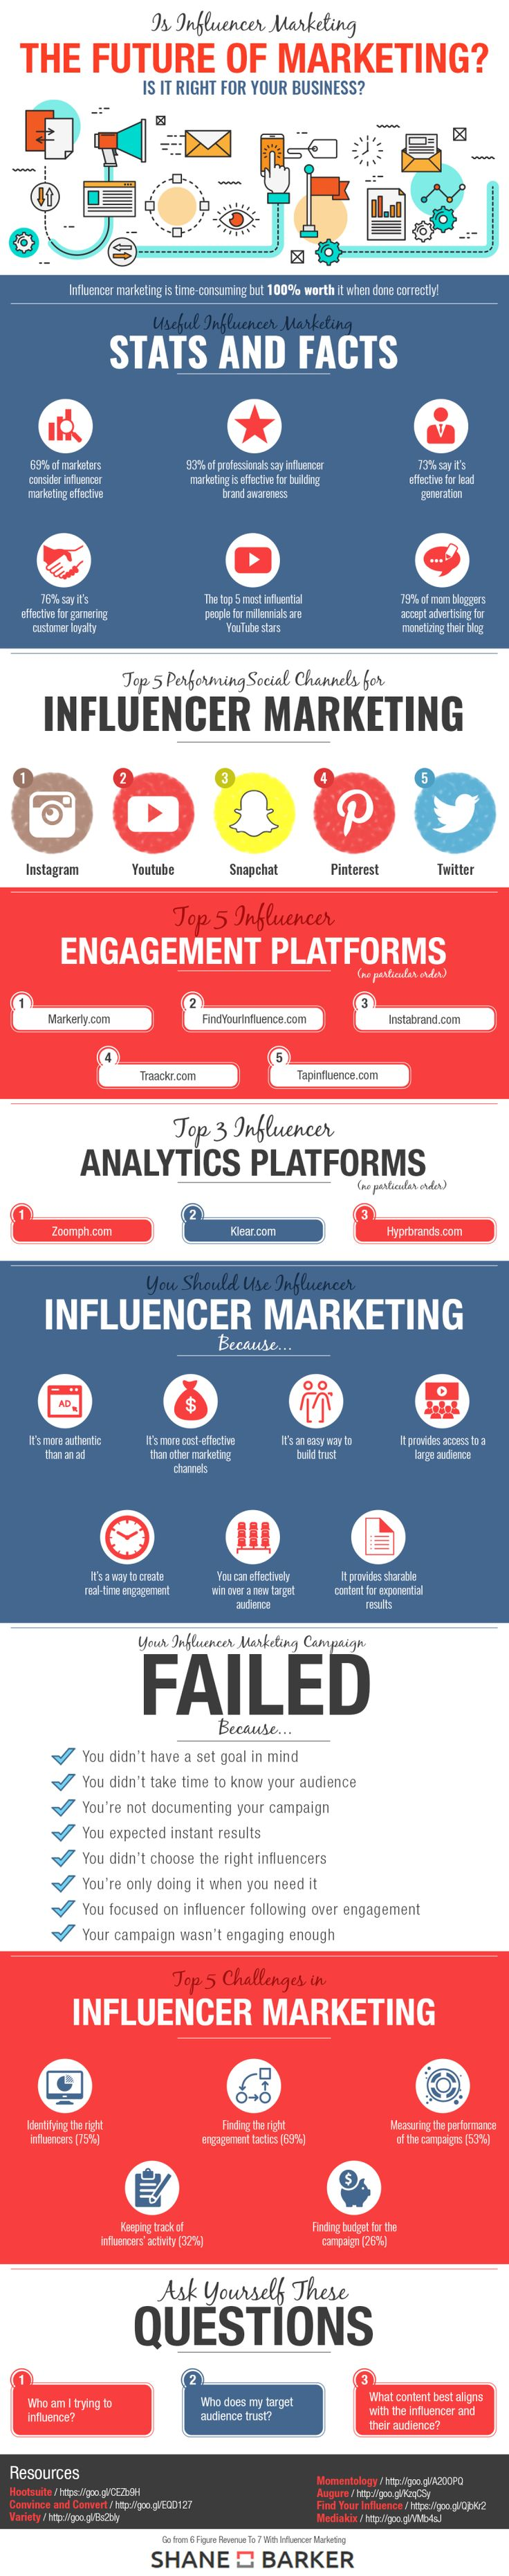 Is Social Influencer Marketing Right For Your Business? #infographic